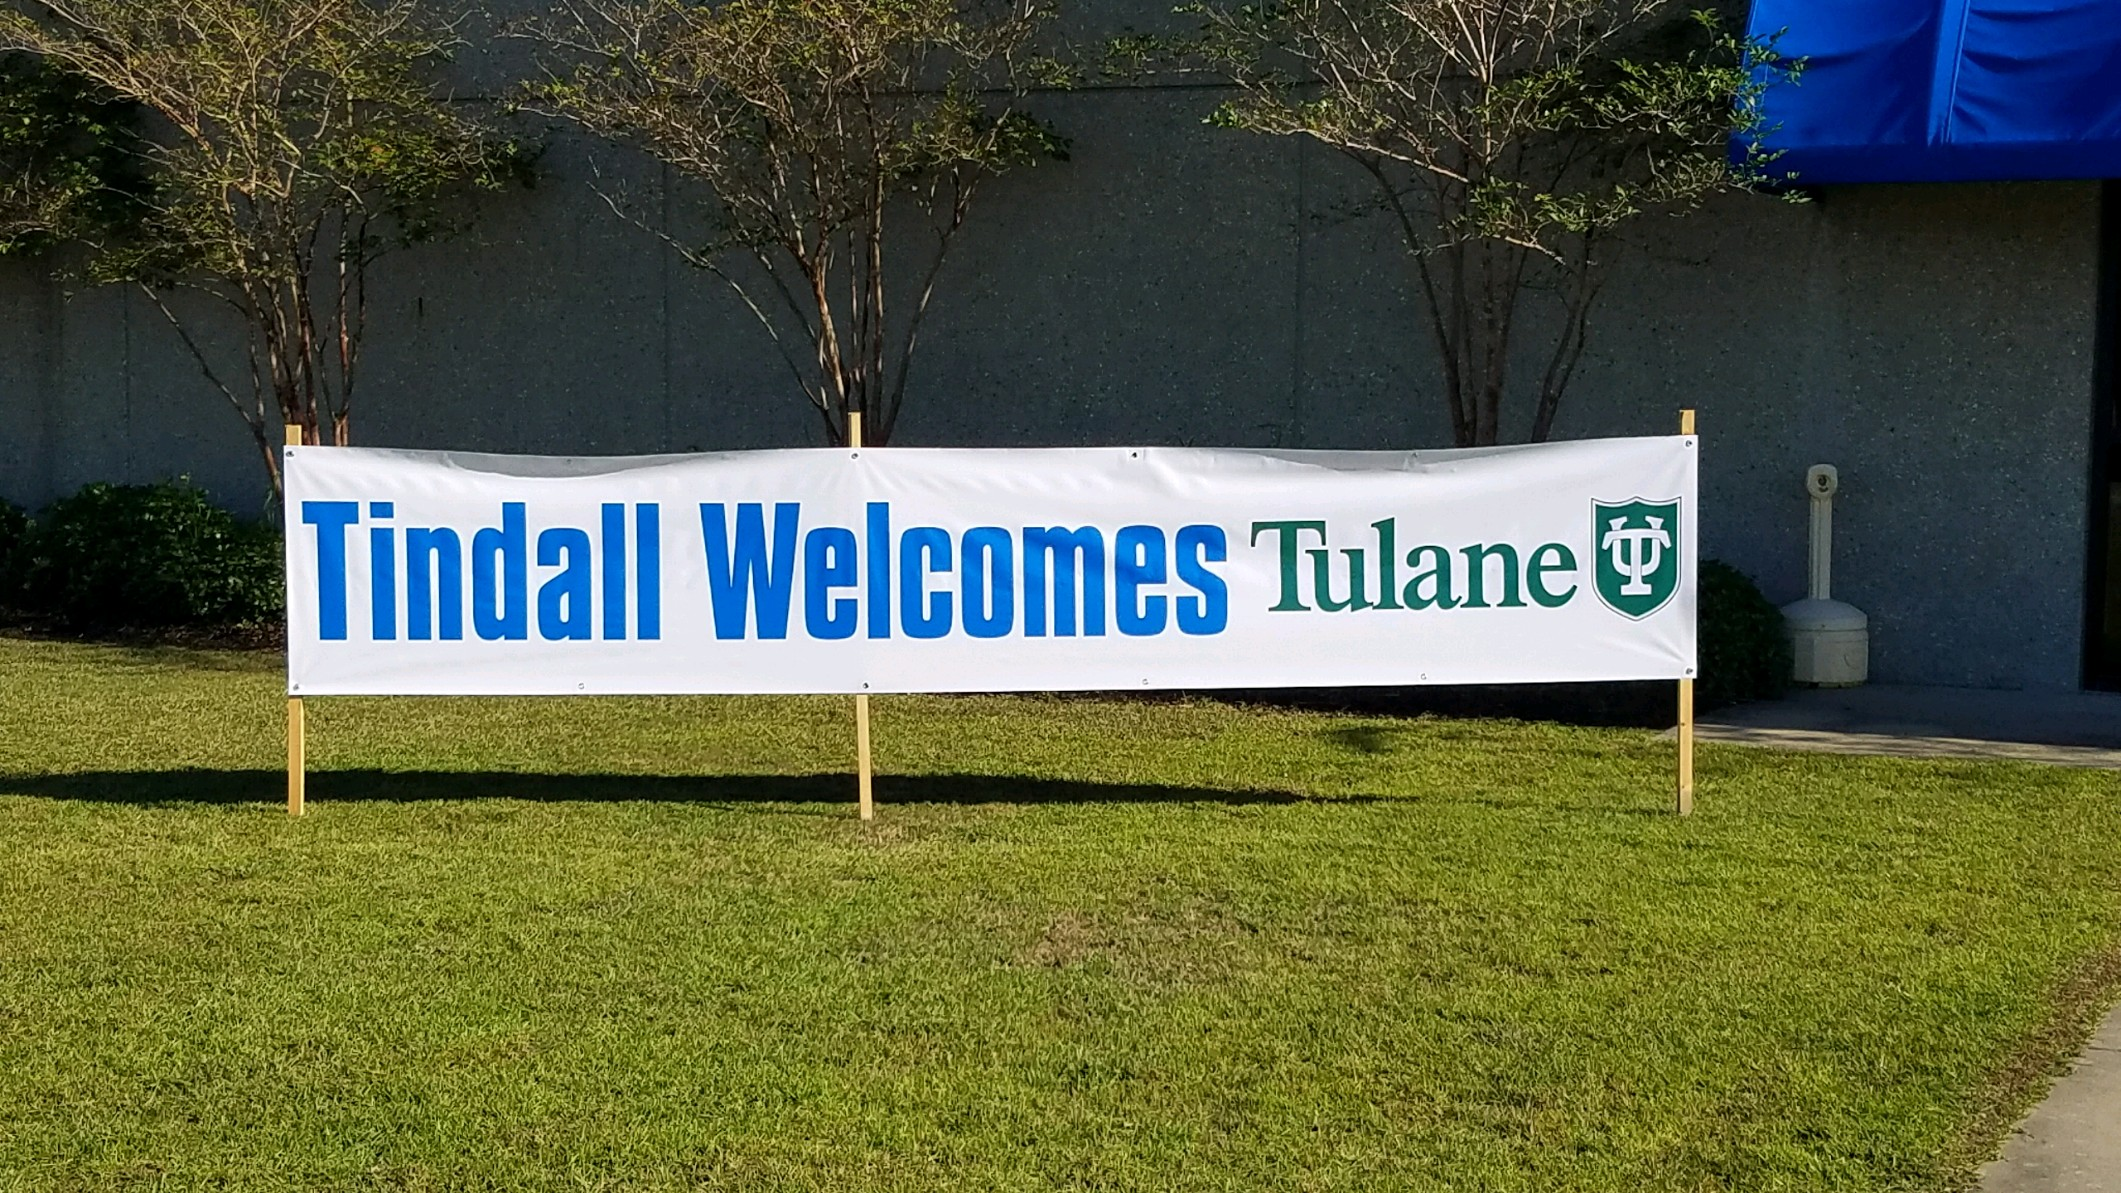 Tindall displayed this welcome sign for the undergraduate students visiting their PCI certified plant on 10/3/18.